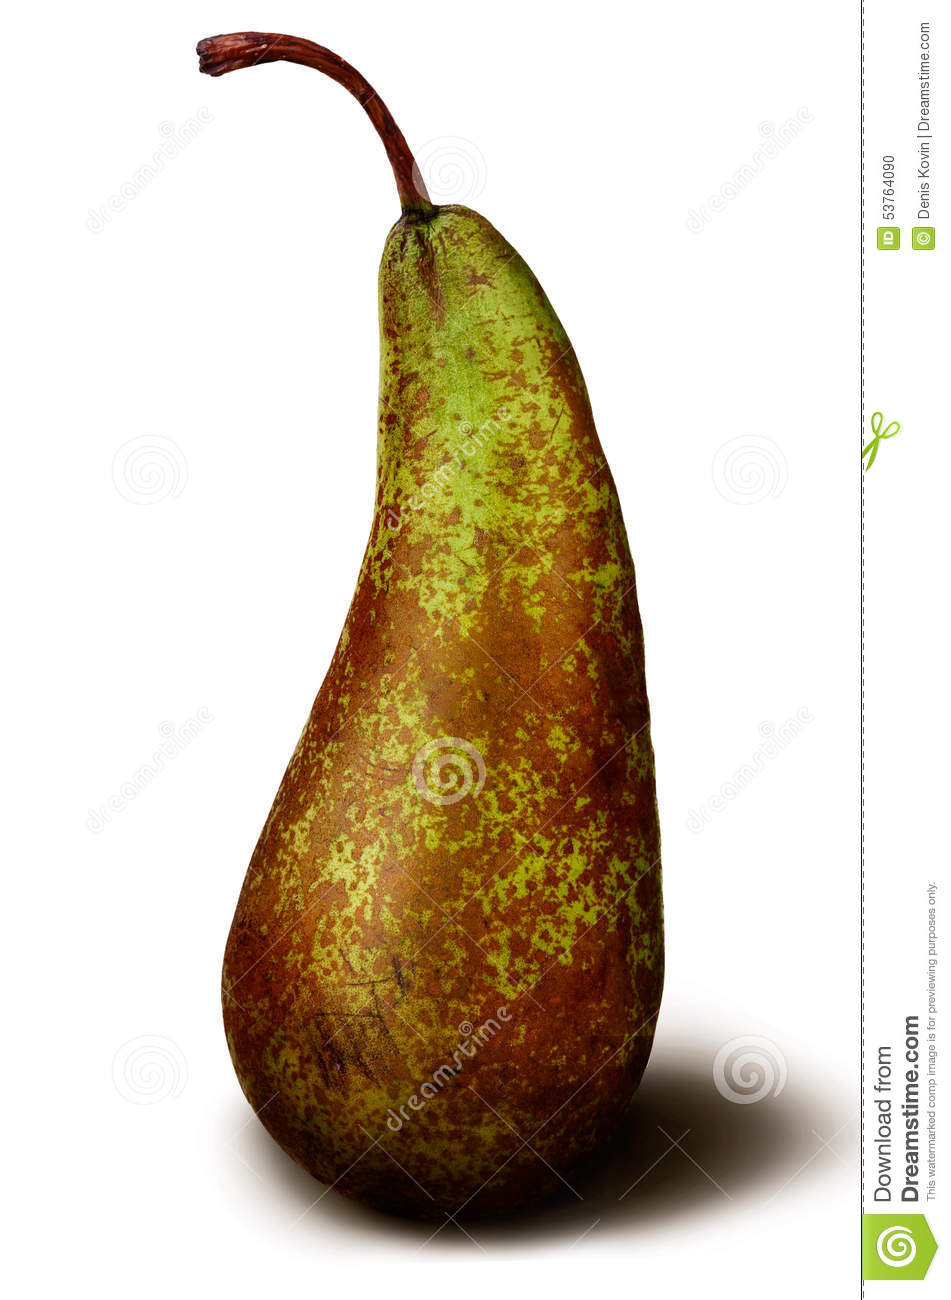 The vintage pear sorry, that